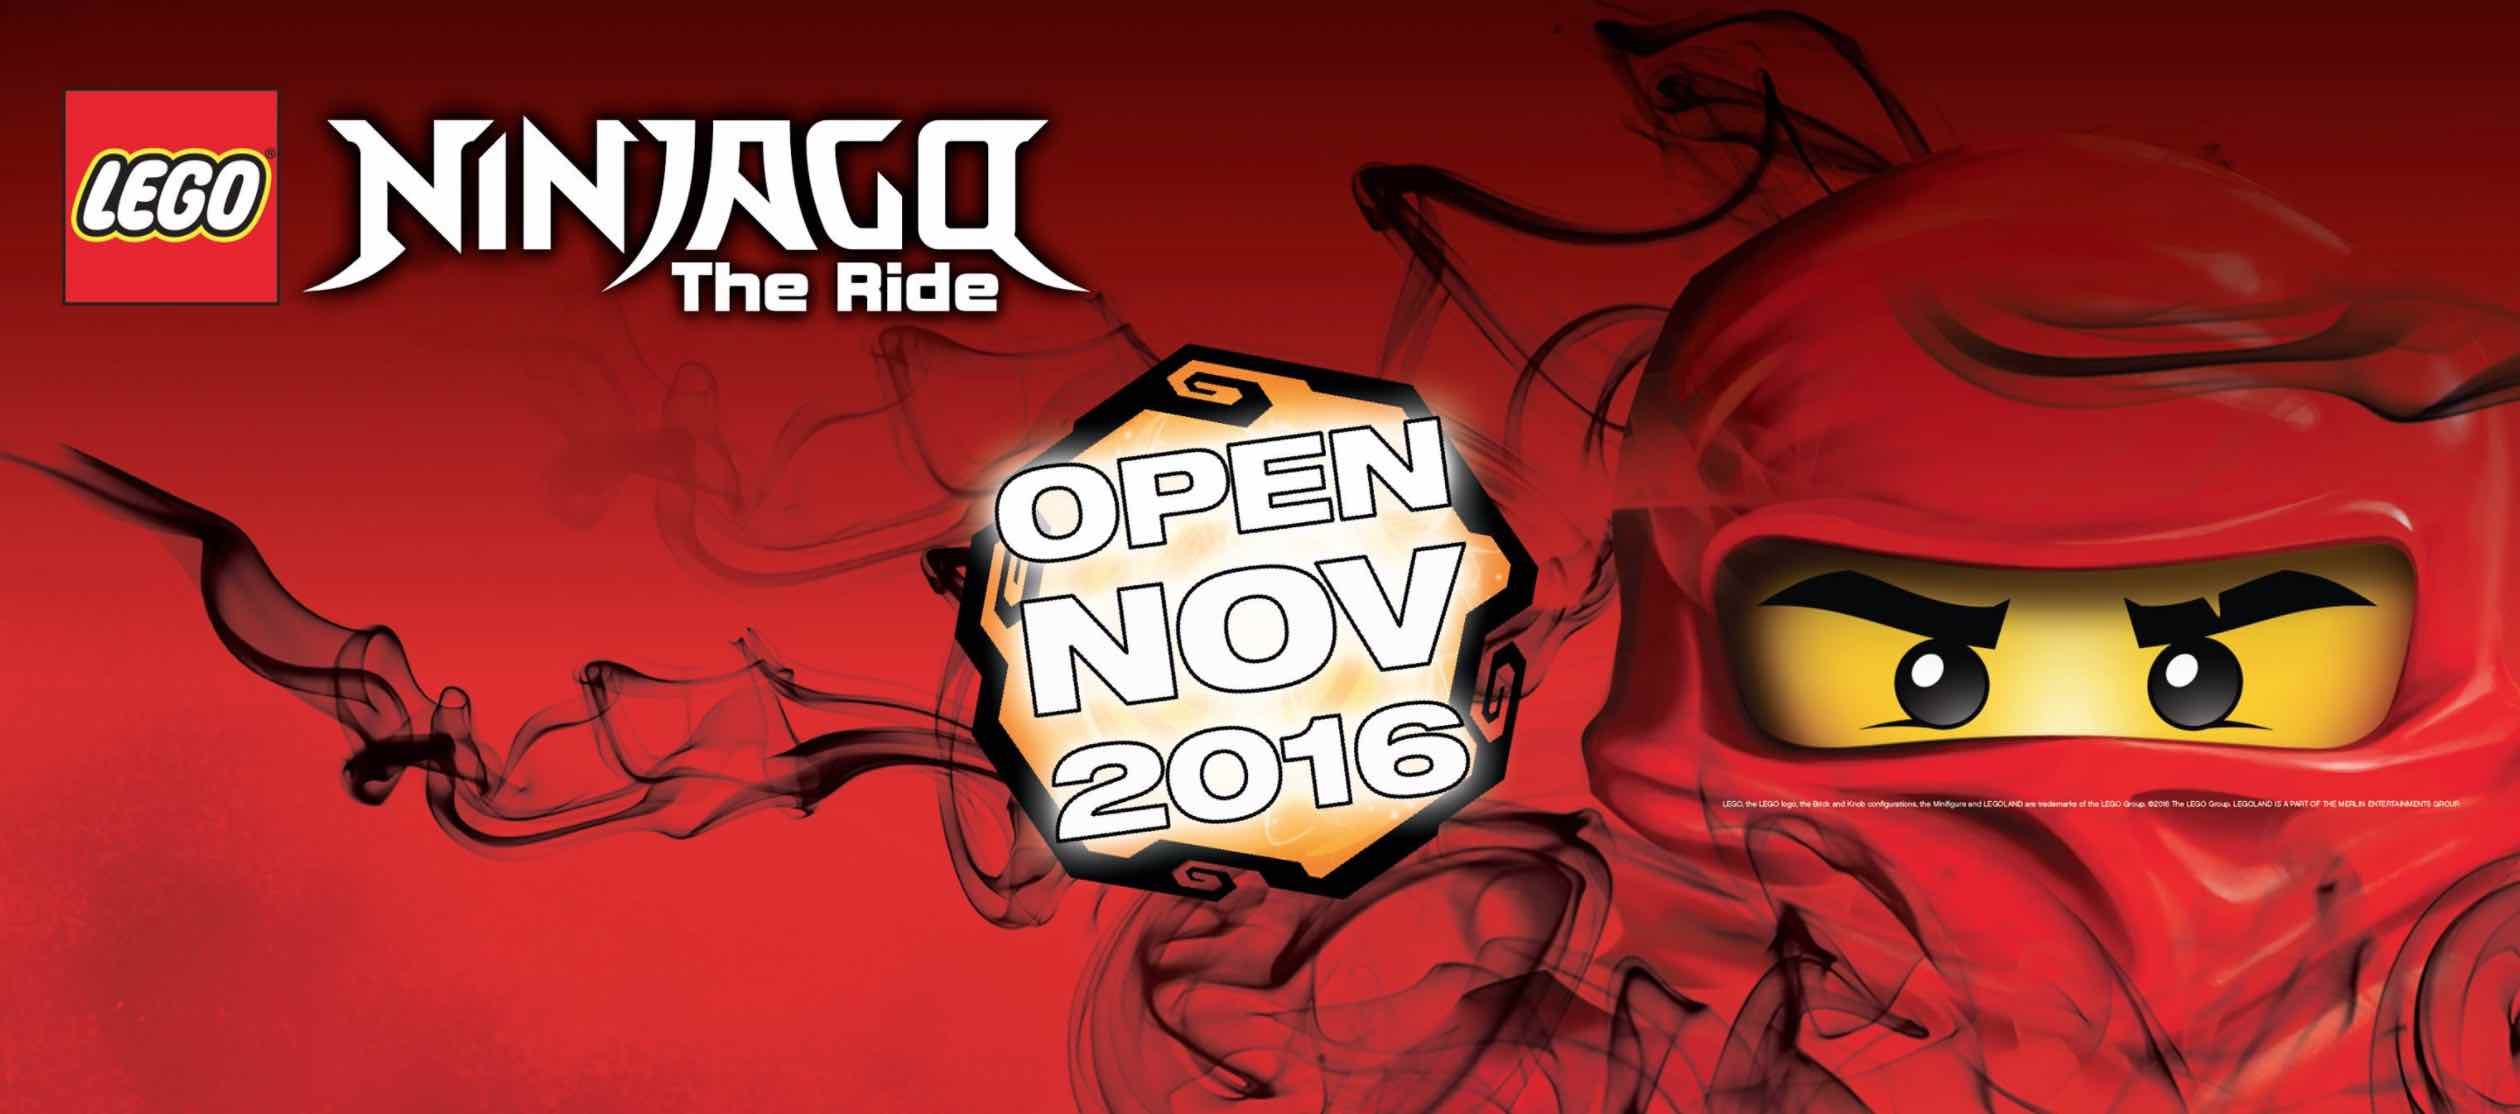 ninjago-the-ride-launched-in-legoland-malaysia-resort-aspirantsg